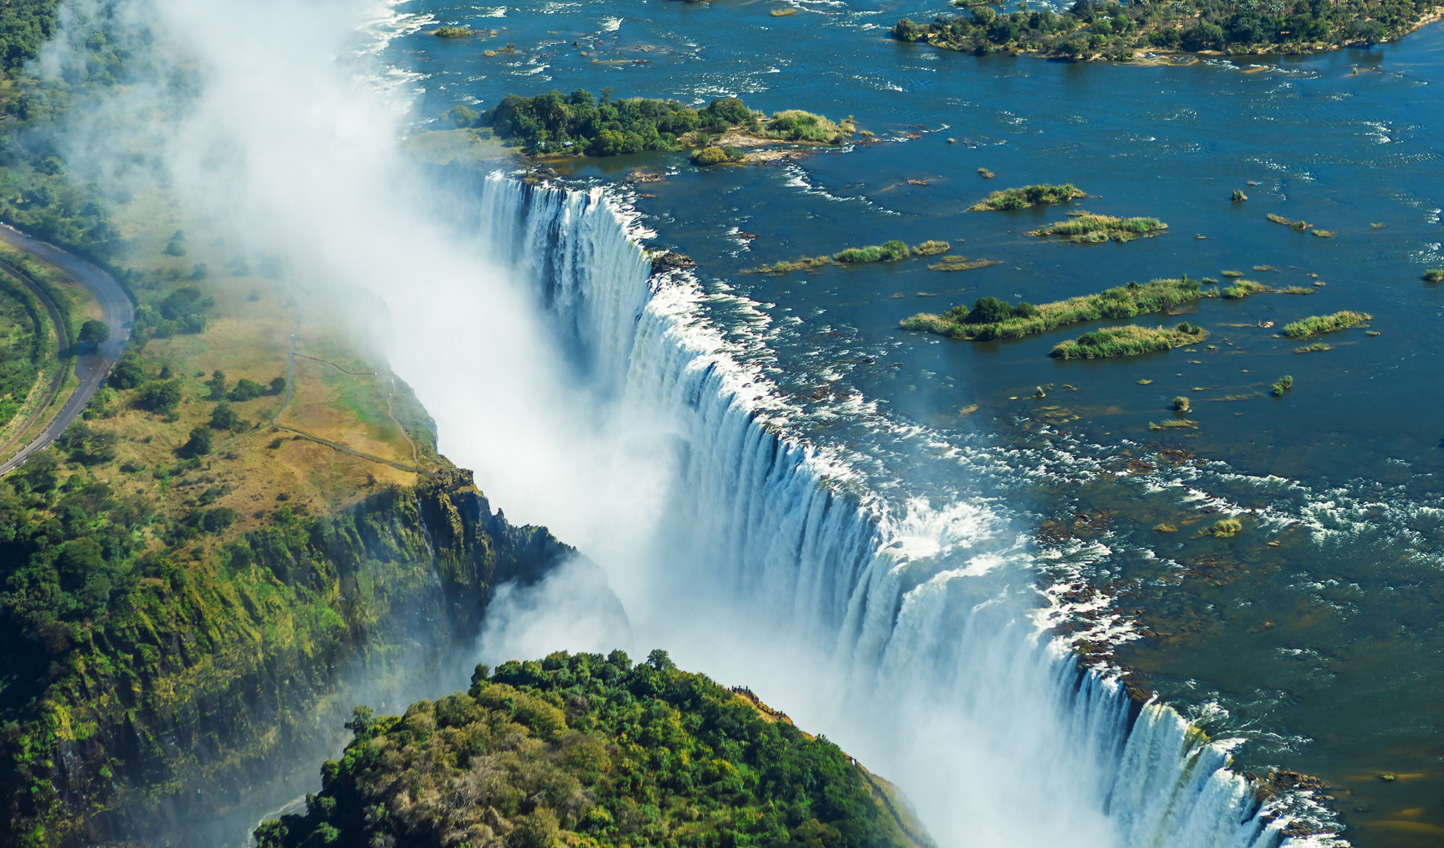 Be wowed by the majestic Victoria Falls